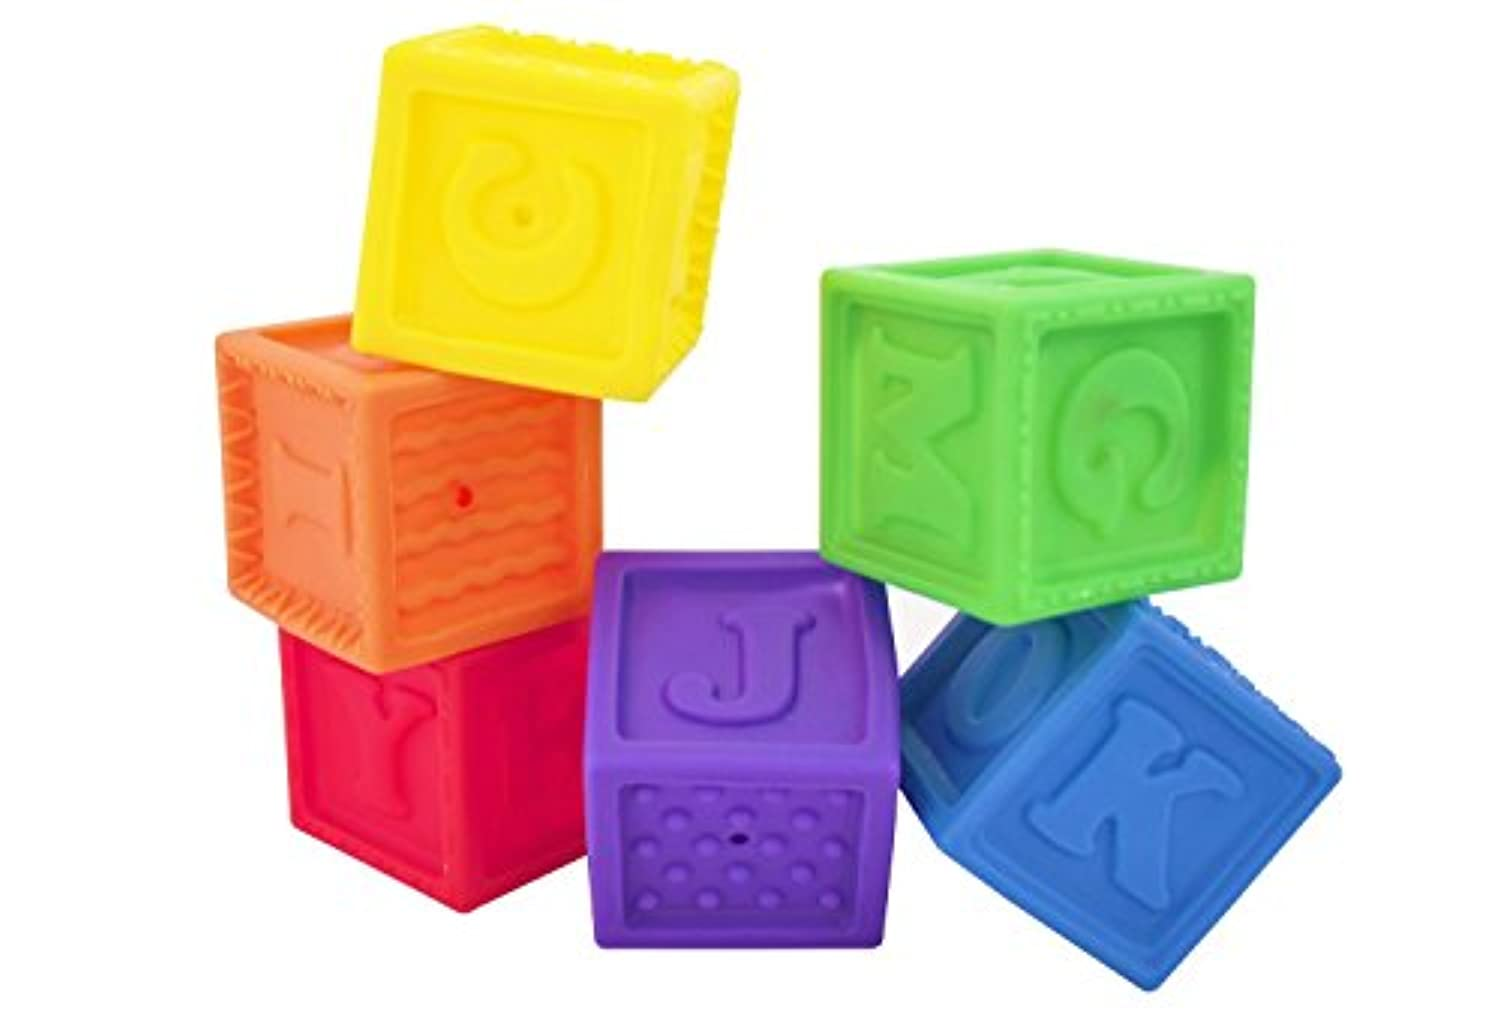 Sassy Developmental Bath Toy, Squirt and Squeak Blocks (Discontinued by Manufacturer) [並行輸入品]